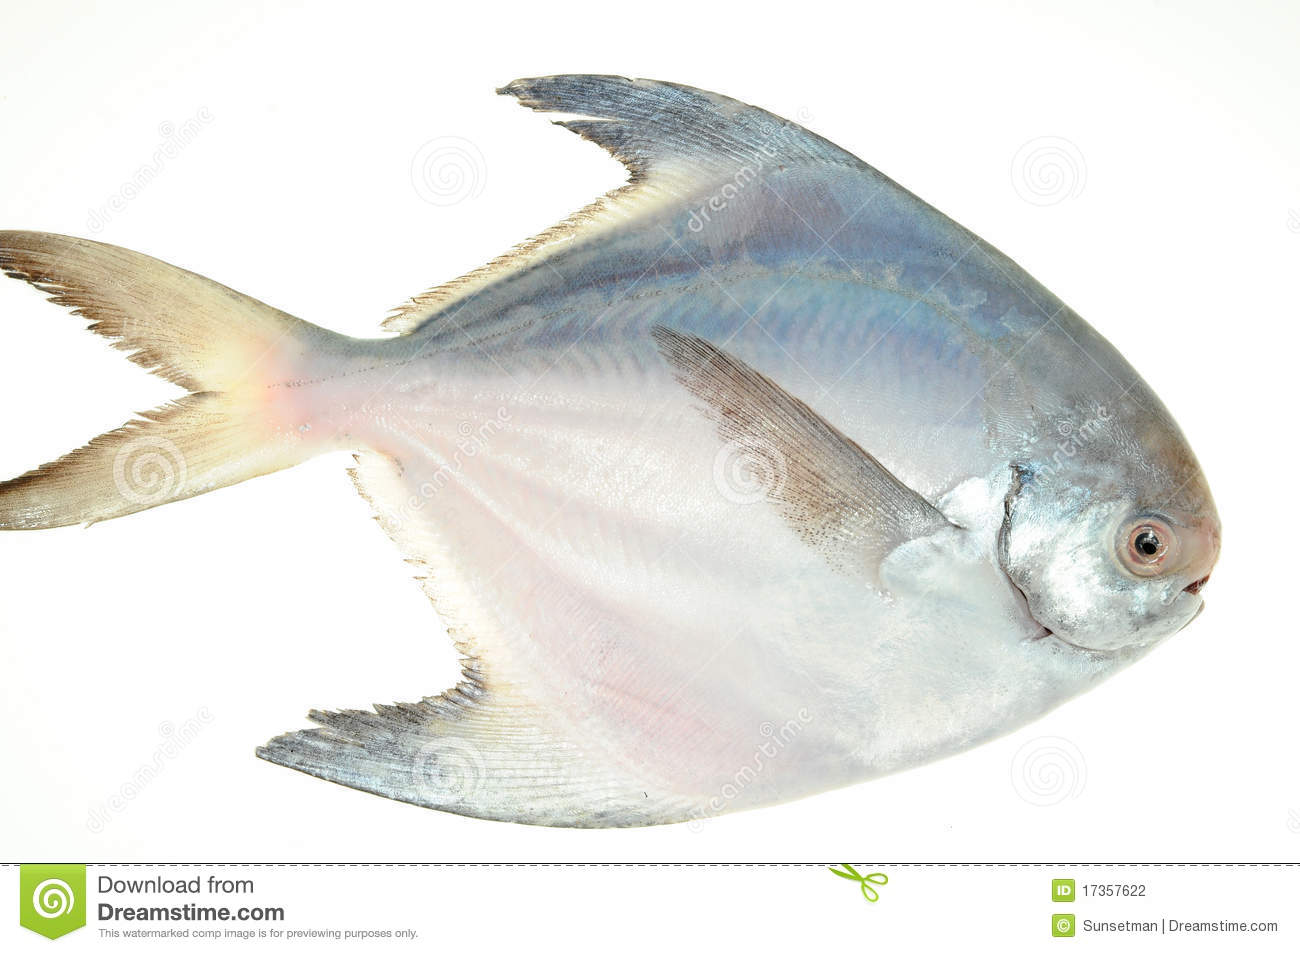 Pomfret fish stock photo image of food marine aquatic for Image of fish